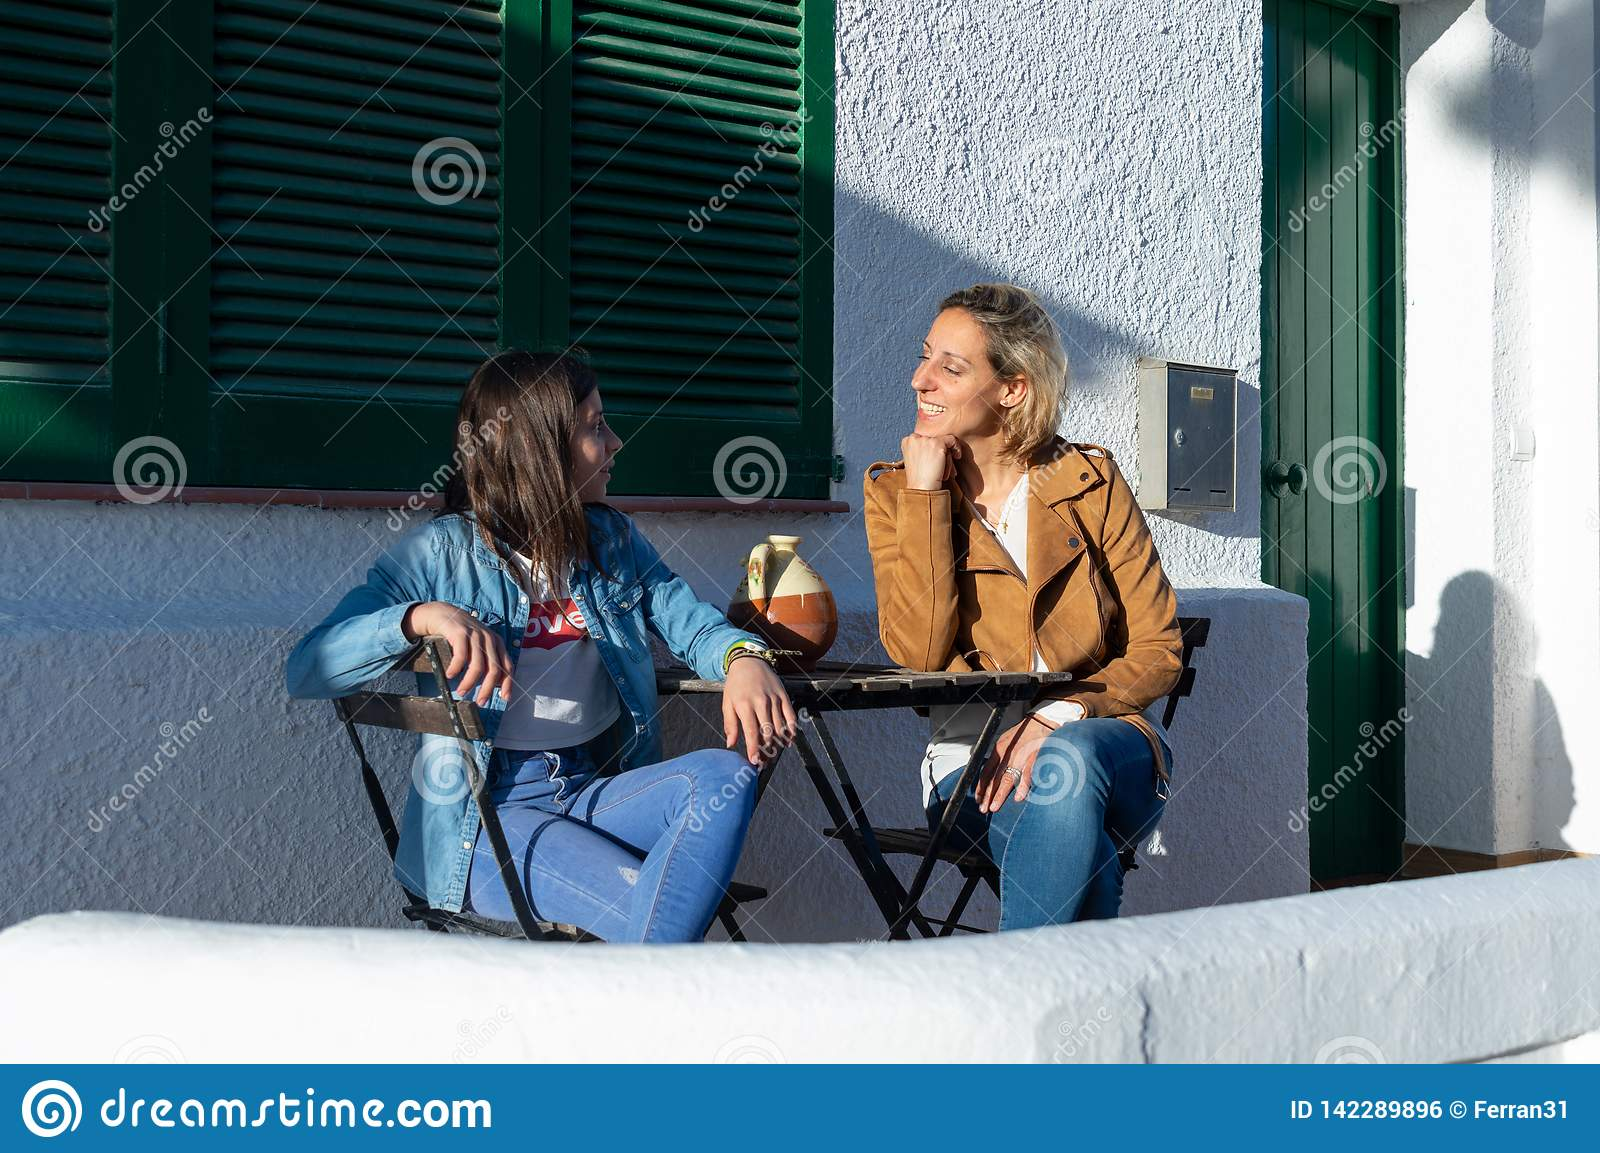 Mother and daughter teenager sitting on green furniture terrace in typical european coastal town of Barcelona, in Spain